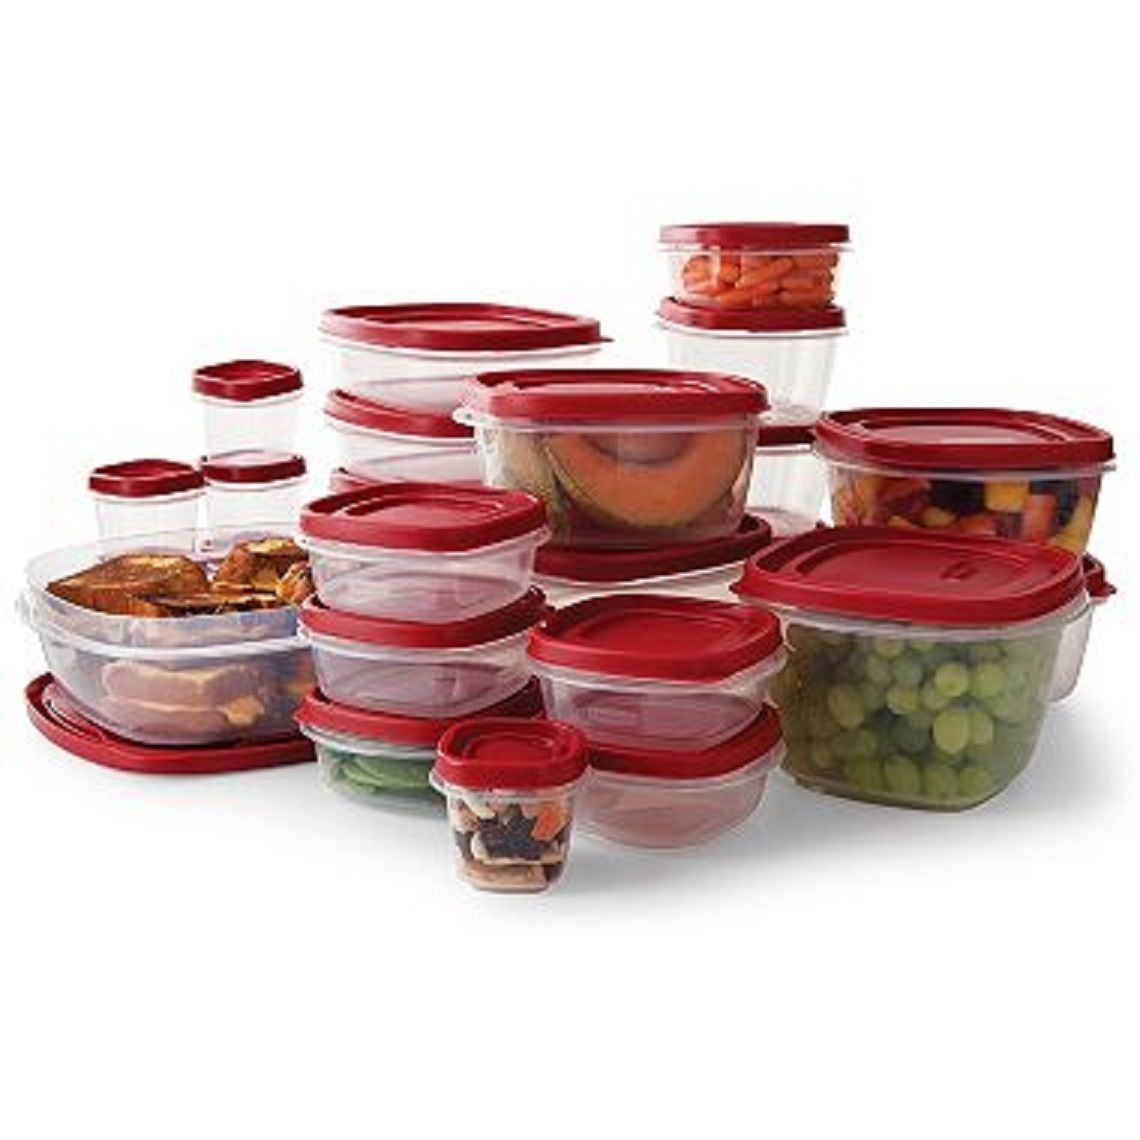 Rubbermaid Easy Find Lids Food Storage Set - 40 pc. 1